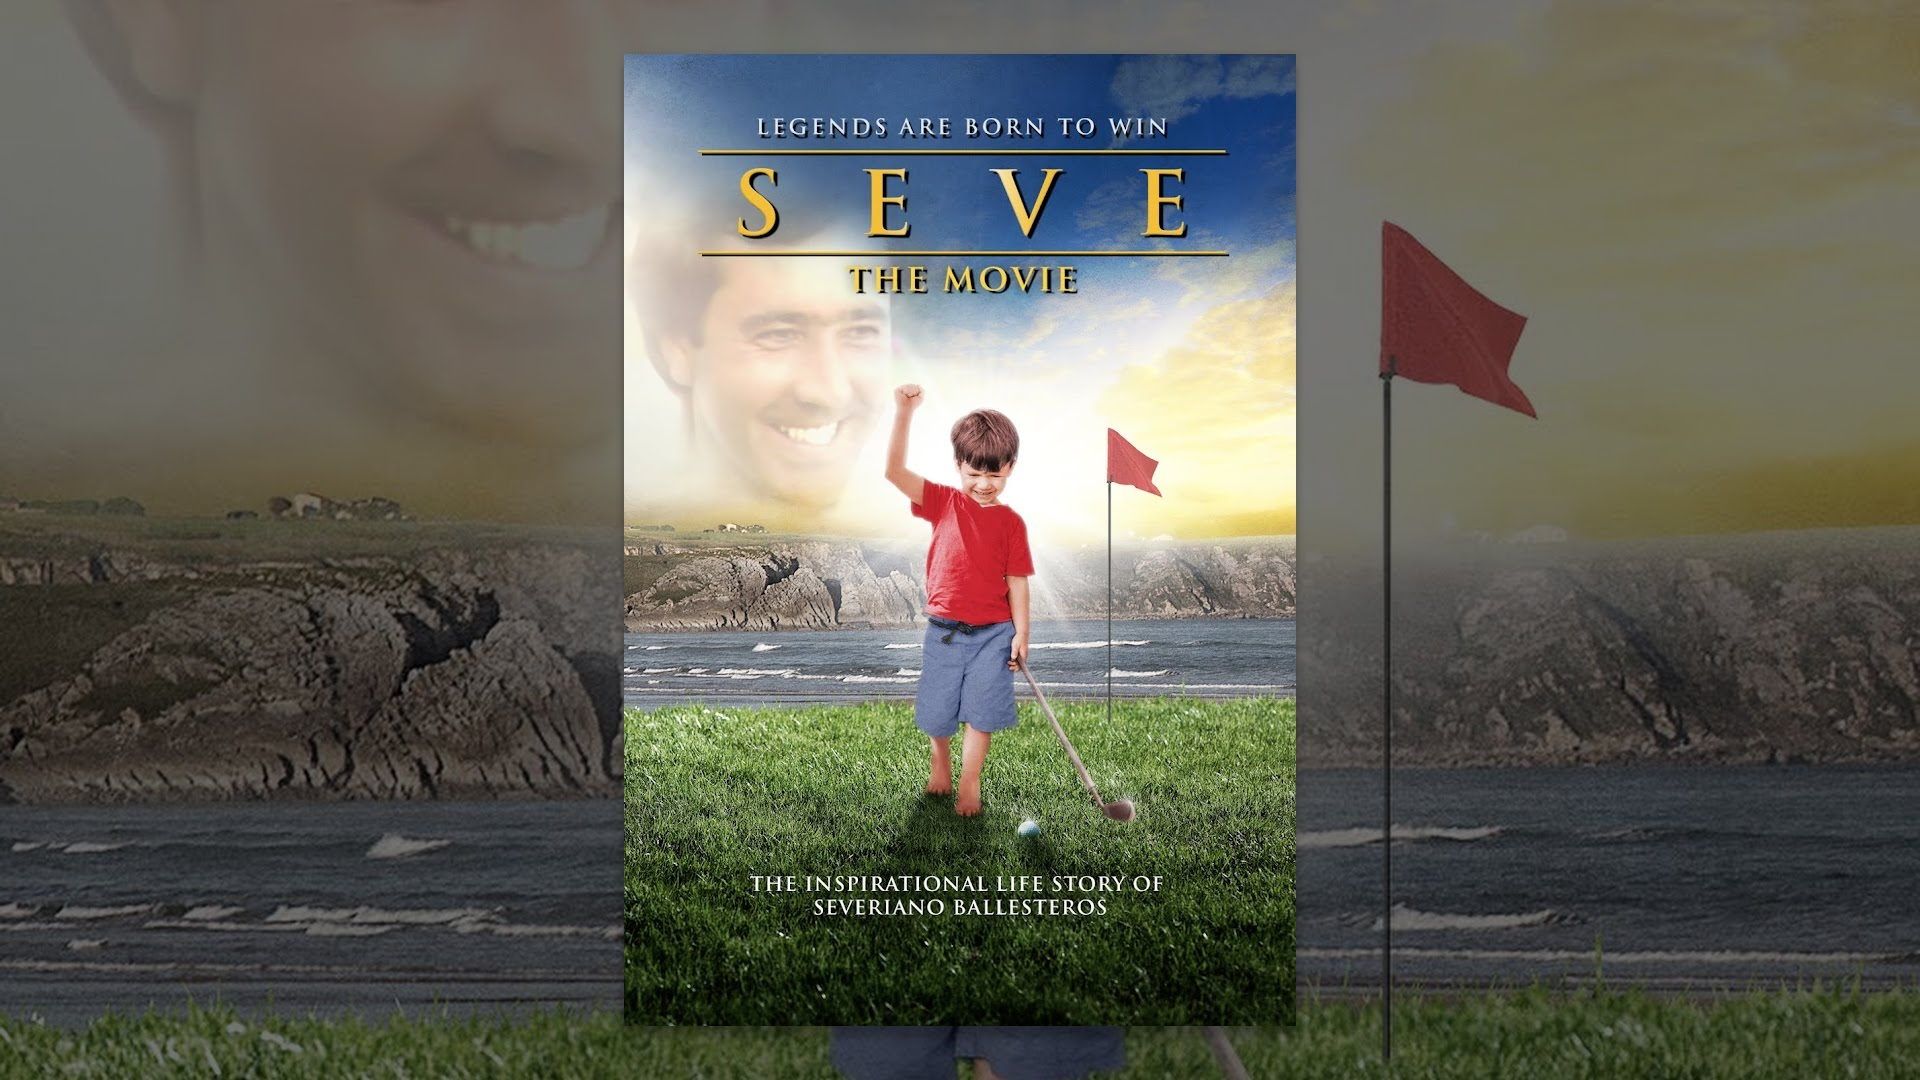 SEVE: THE MOVIE